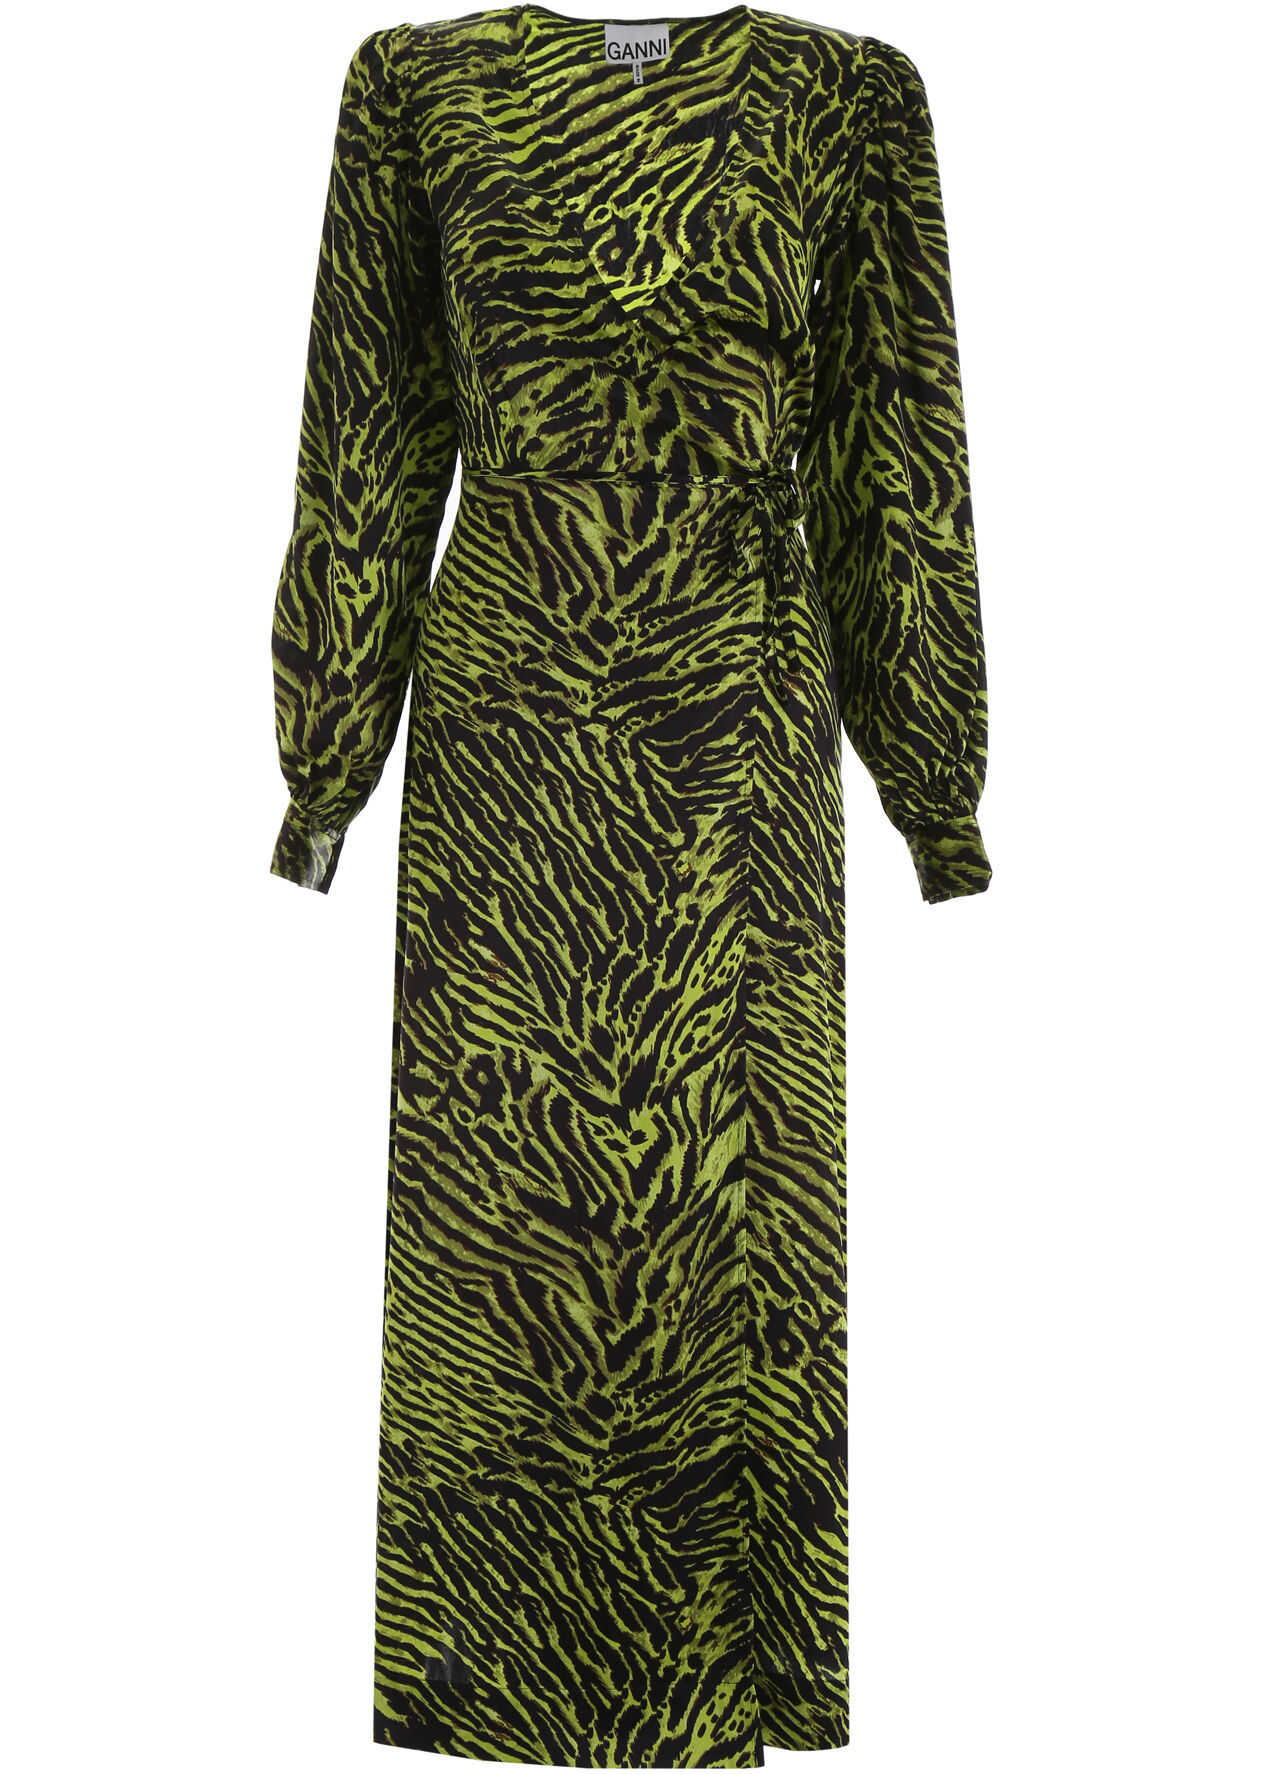 Ganni Zebra-Printed Wrap Dress LIME BLACK